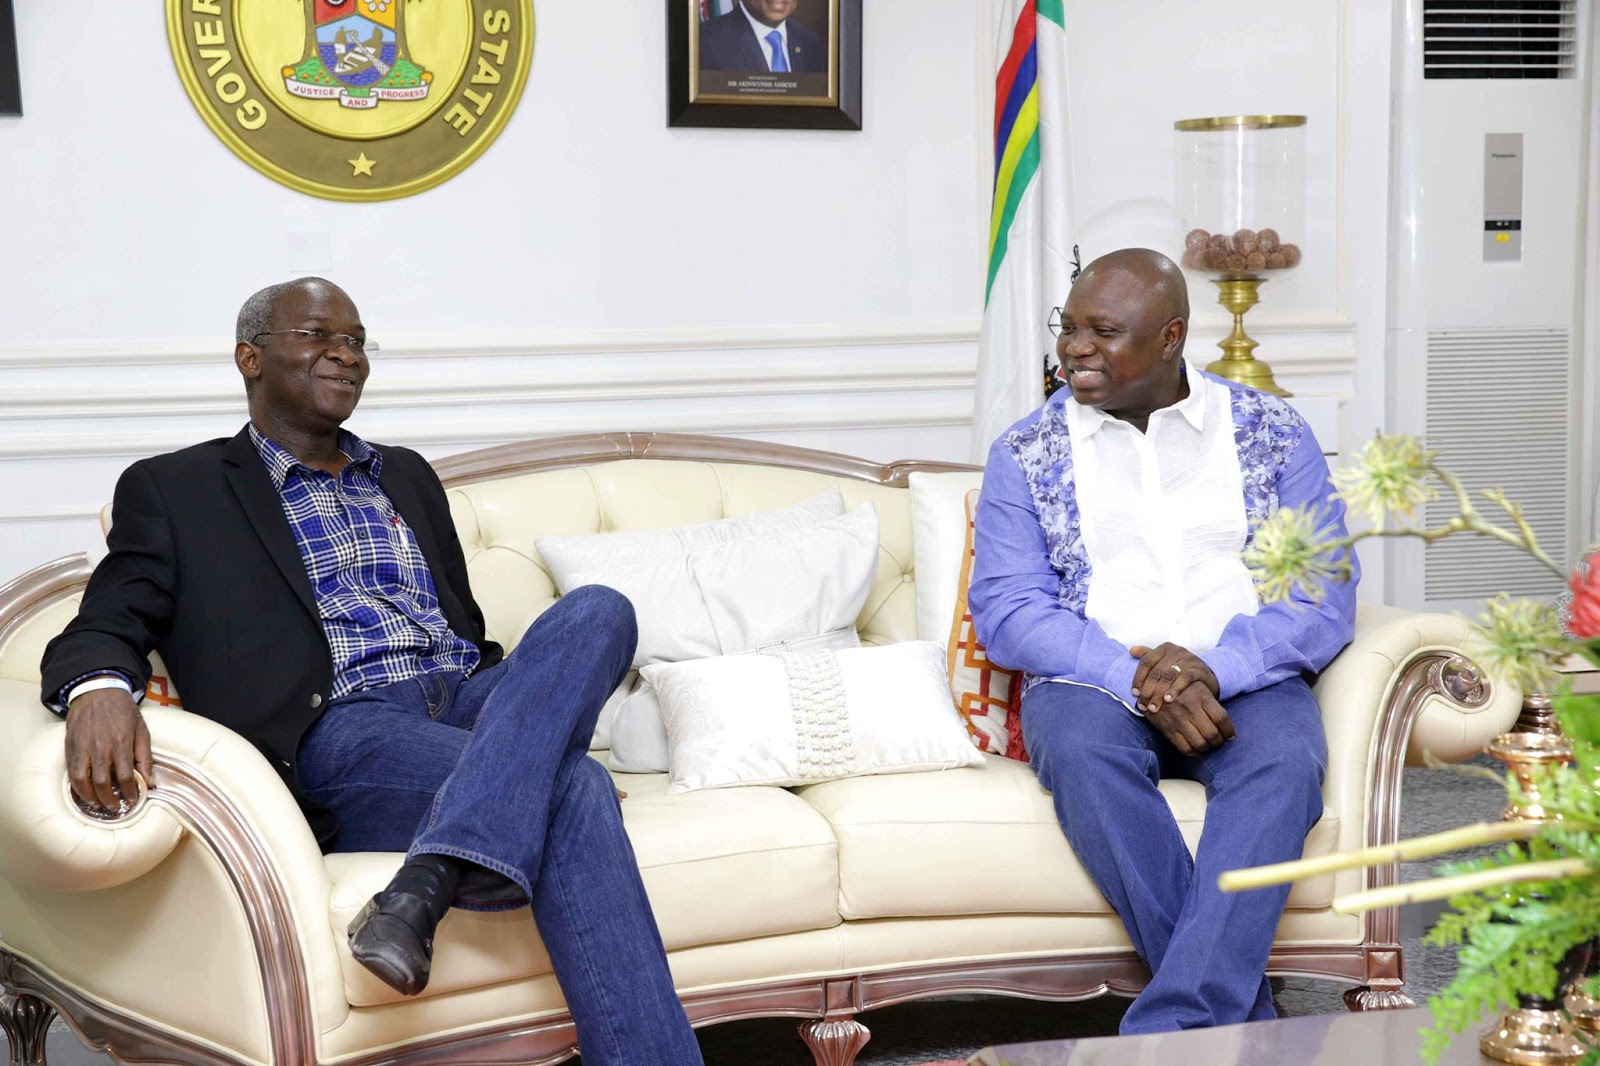 FG will support Lagos on captive power, Fashola tells Ambode